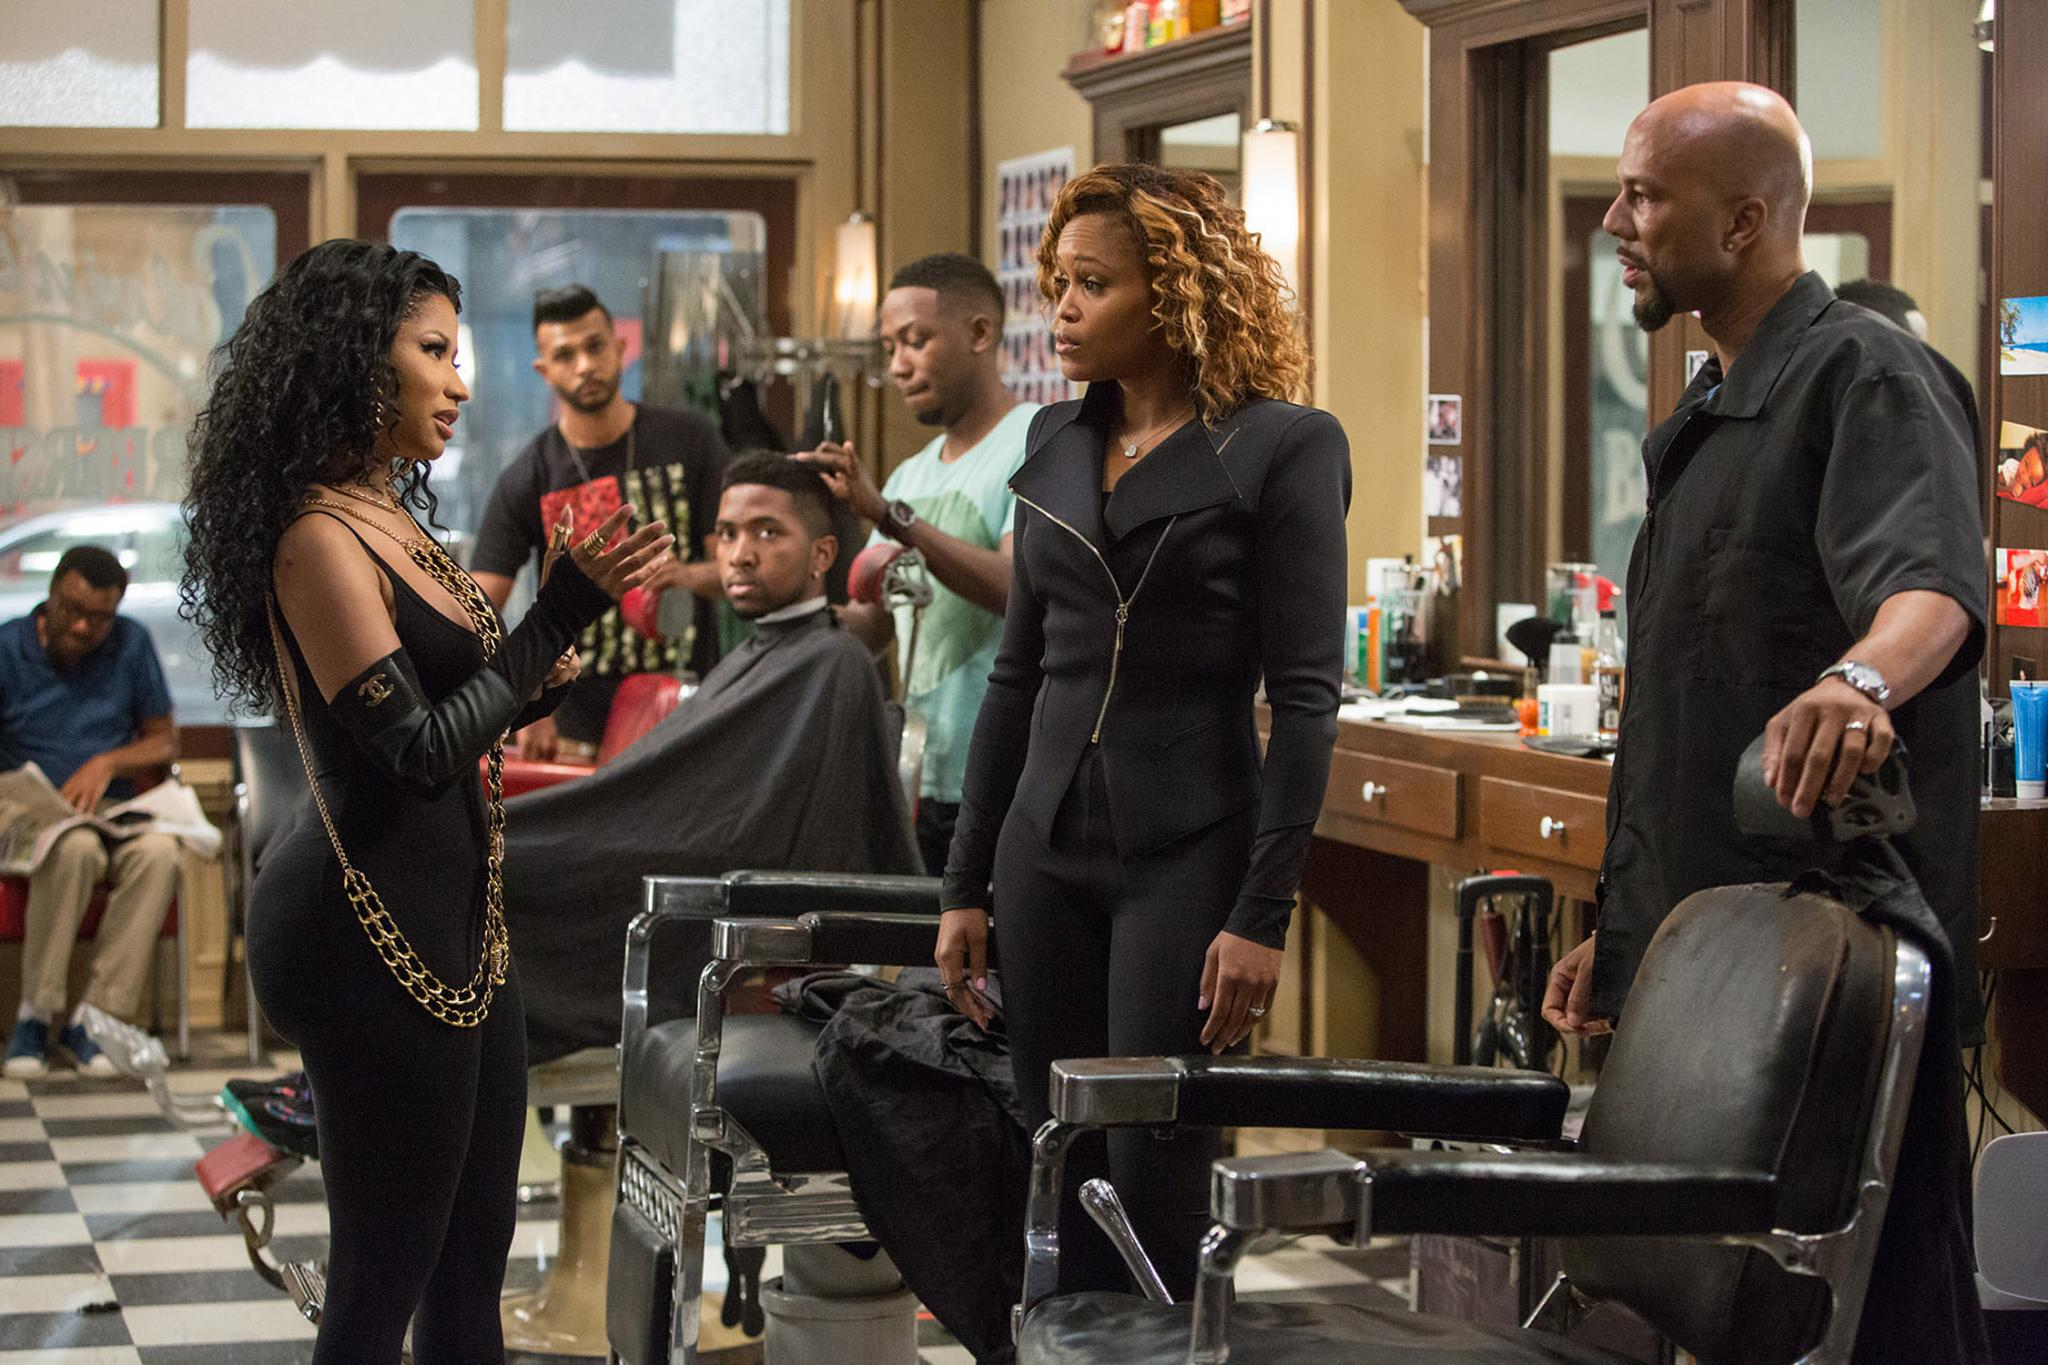 EXCLUSIVE: First Photo of Nicki Minaj, Eve and Common in 'Barbershop: The Next Cut'